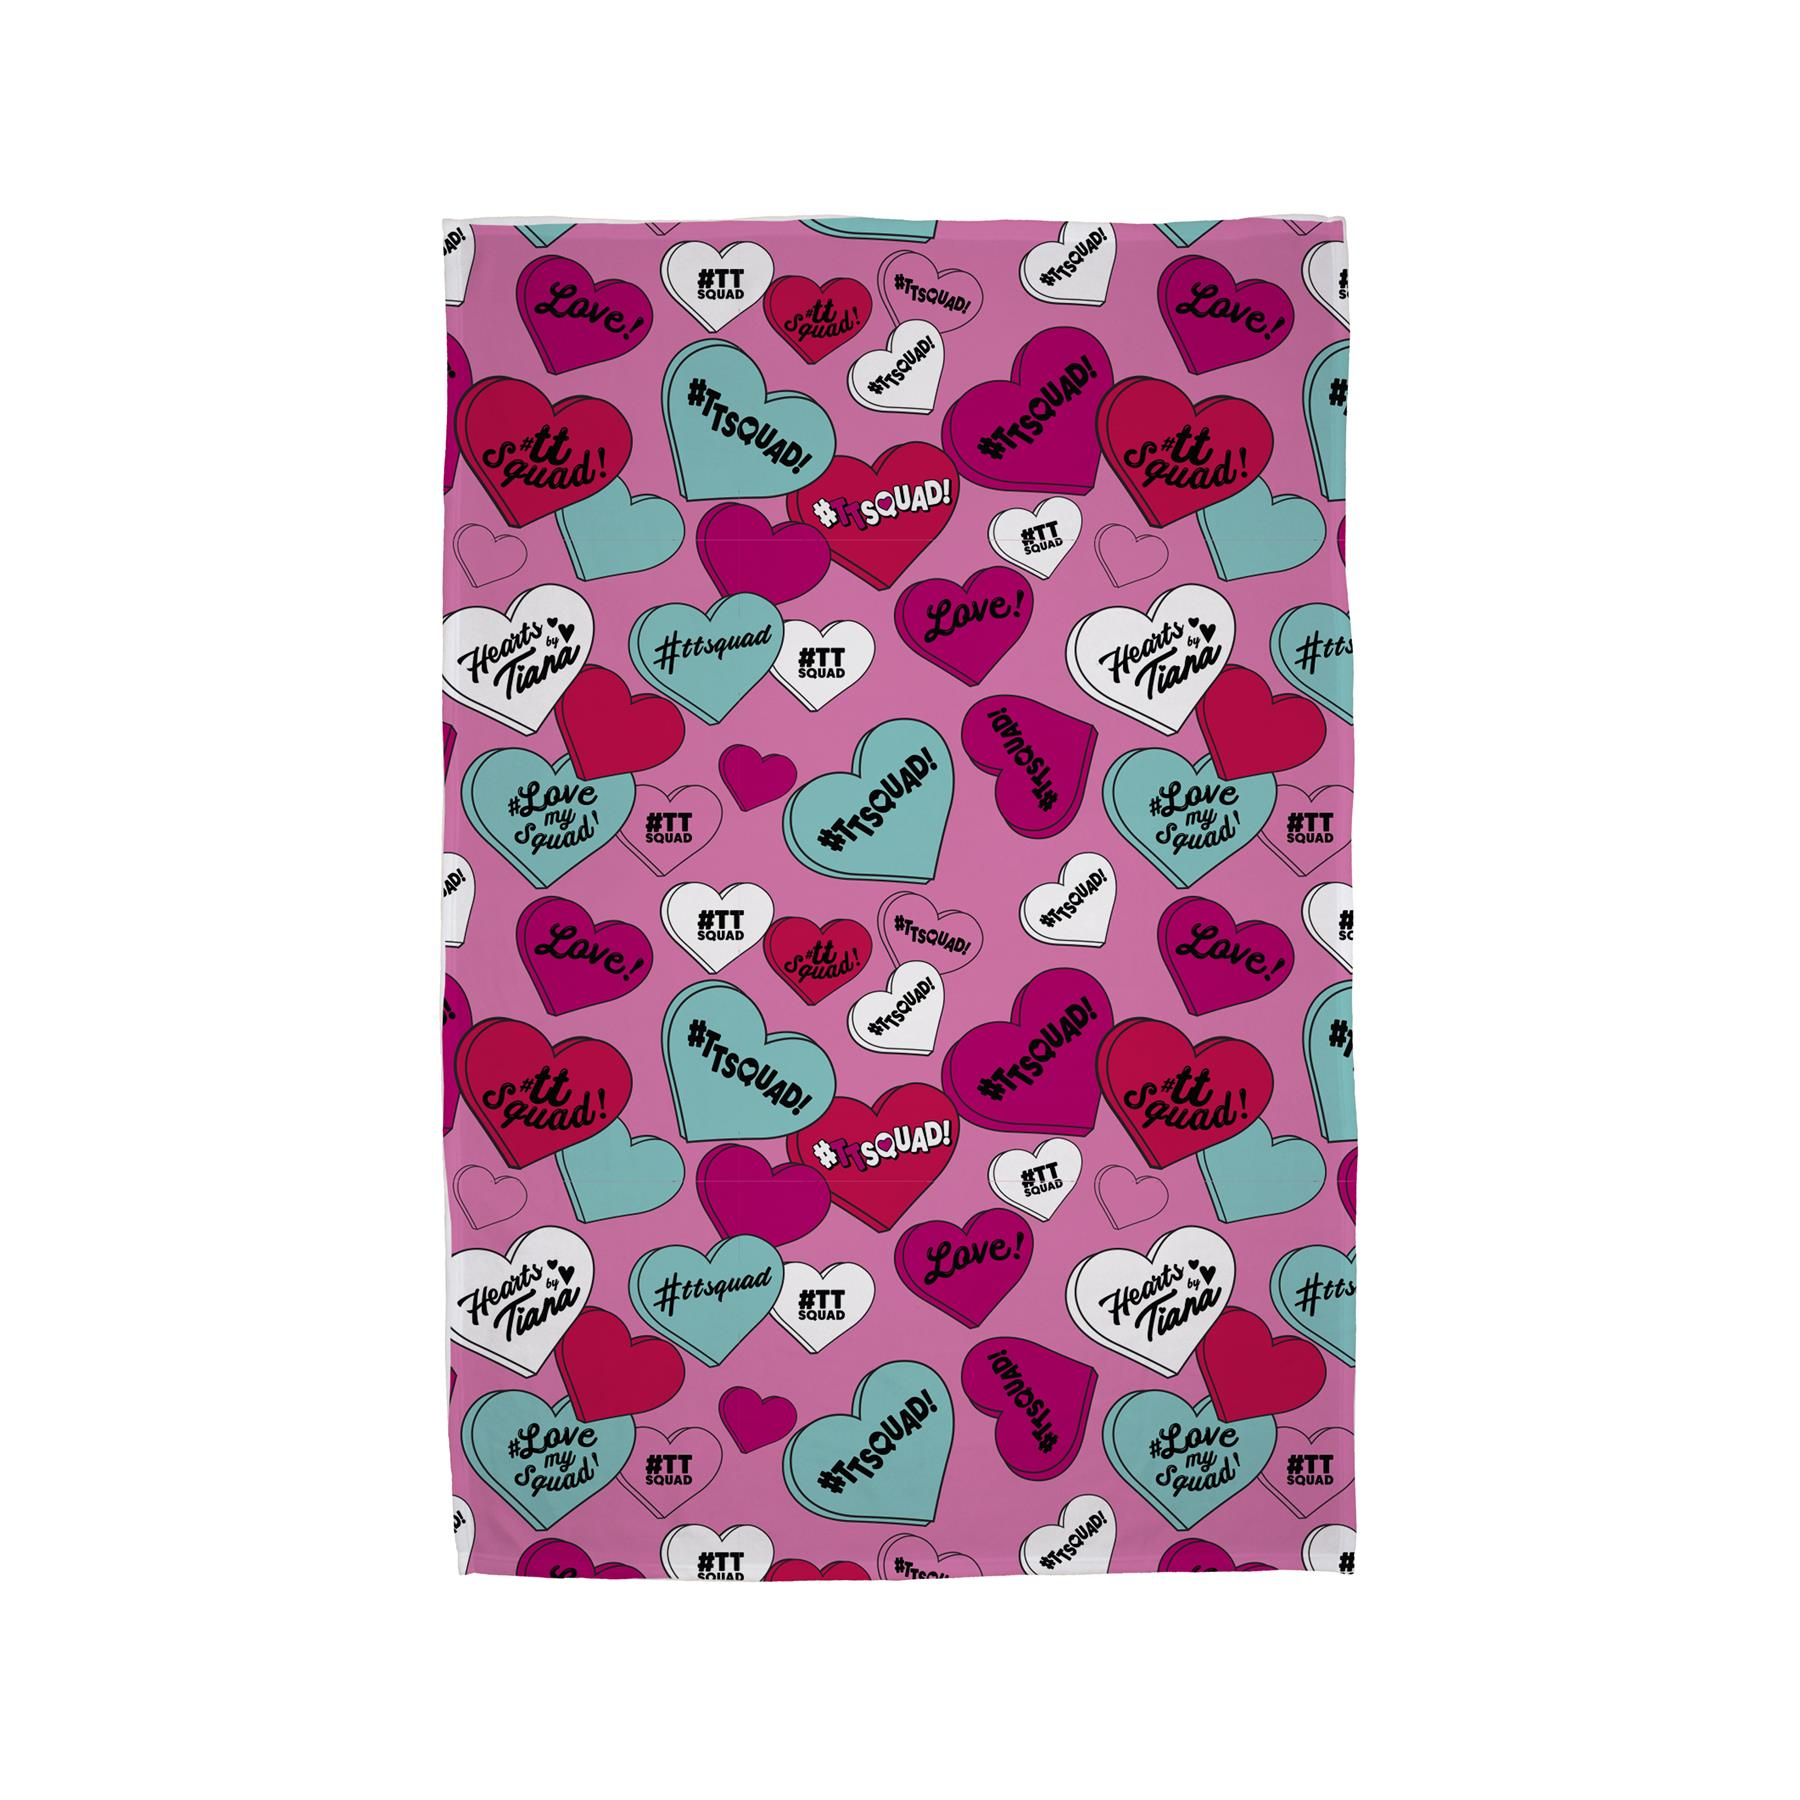 Hearts-by-Tiana-Bedding-Single-Duvet-Cushion-Fleece-Blanket-TTSquad thumbnail 5